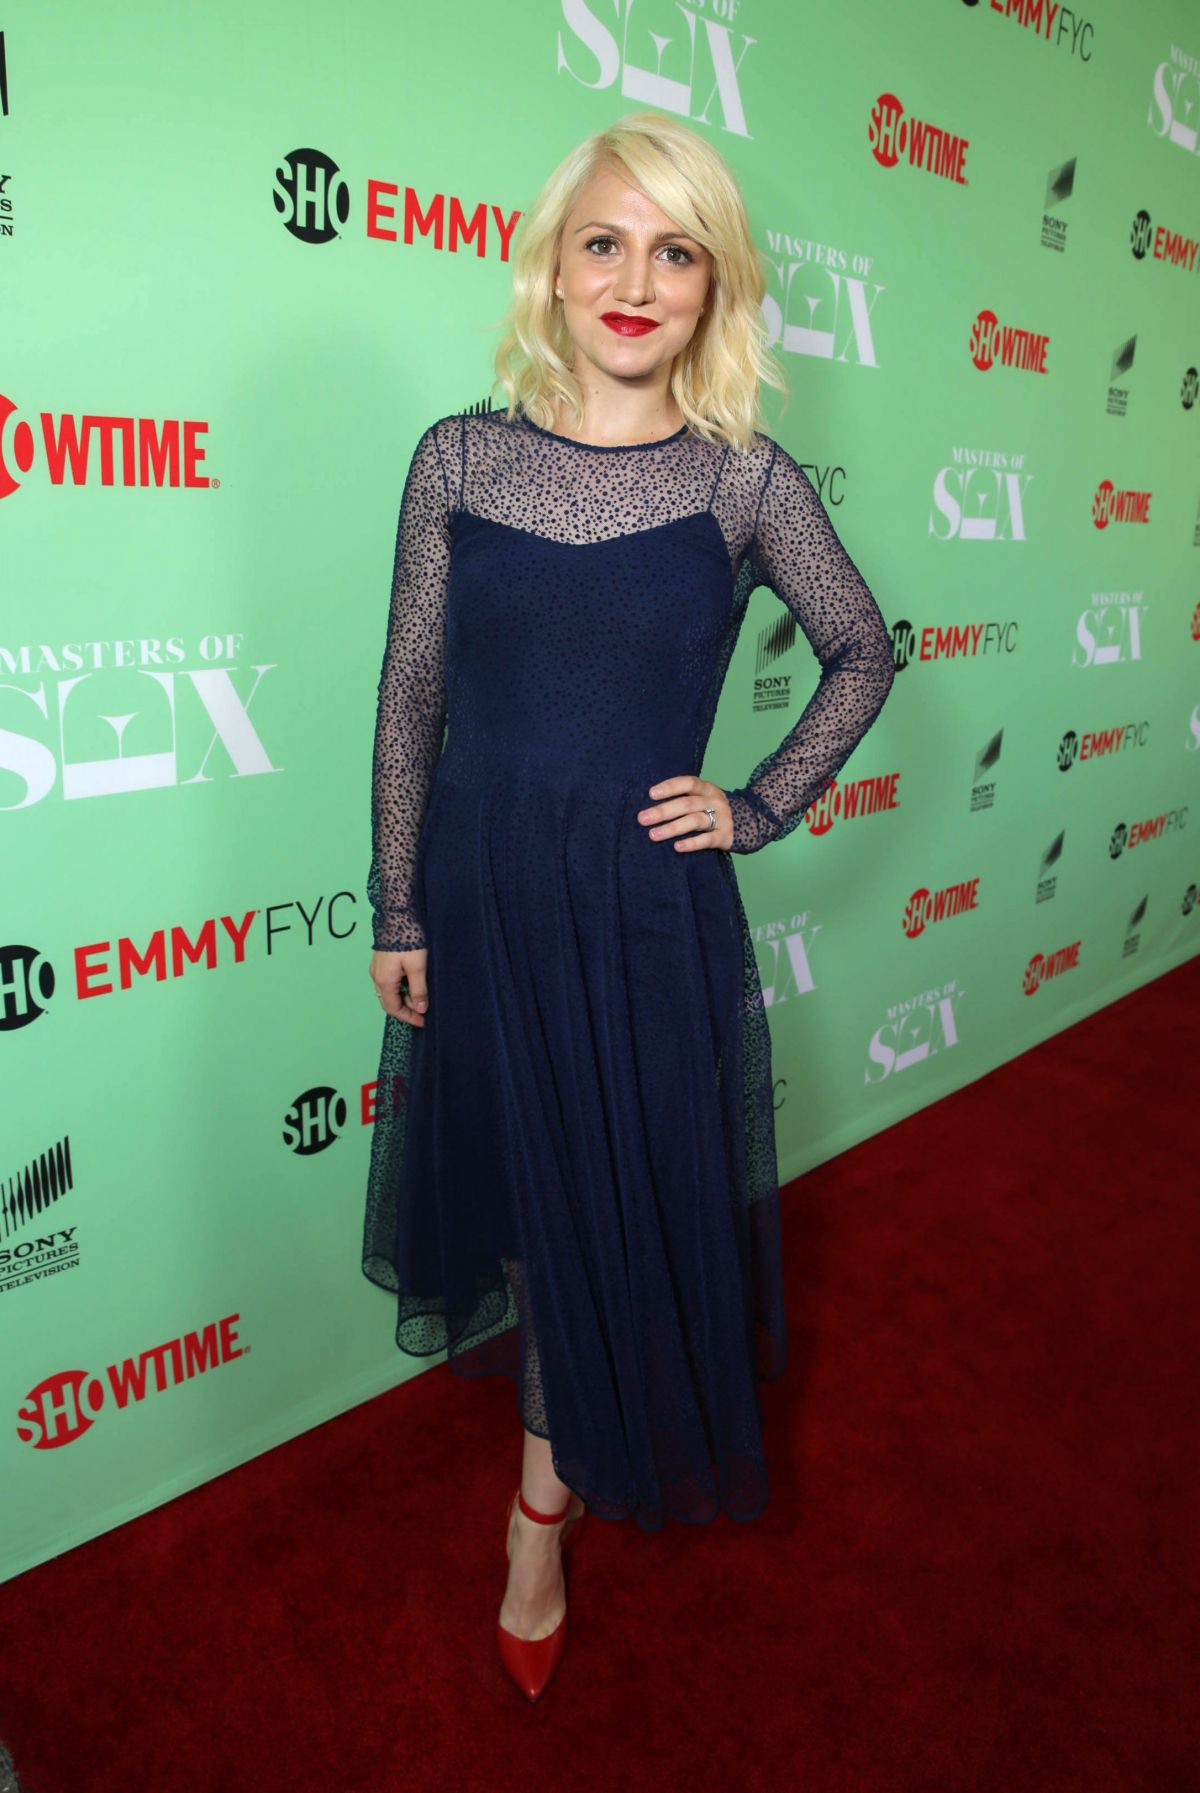 ANNALEIGH ASHFORD at An Evening with Master of S..